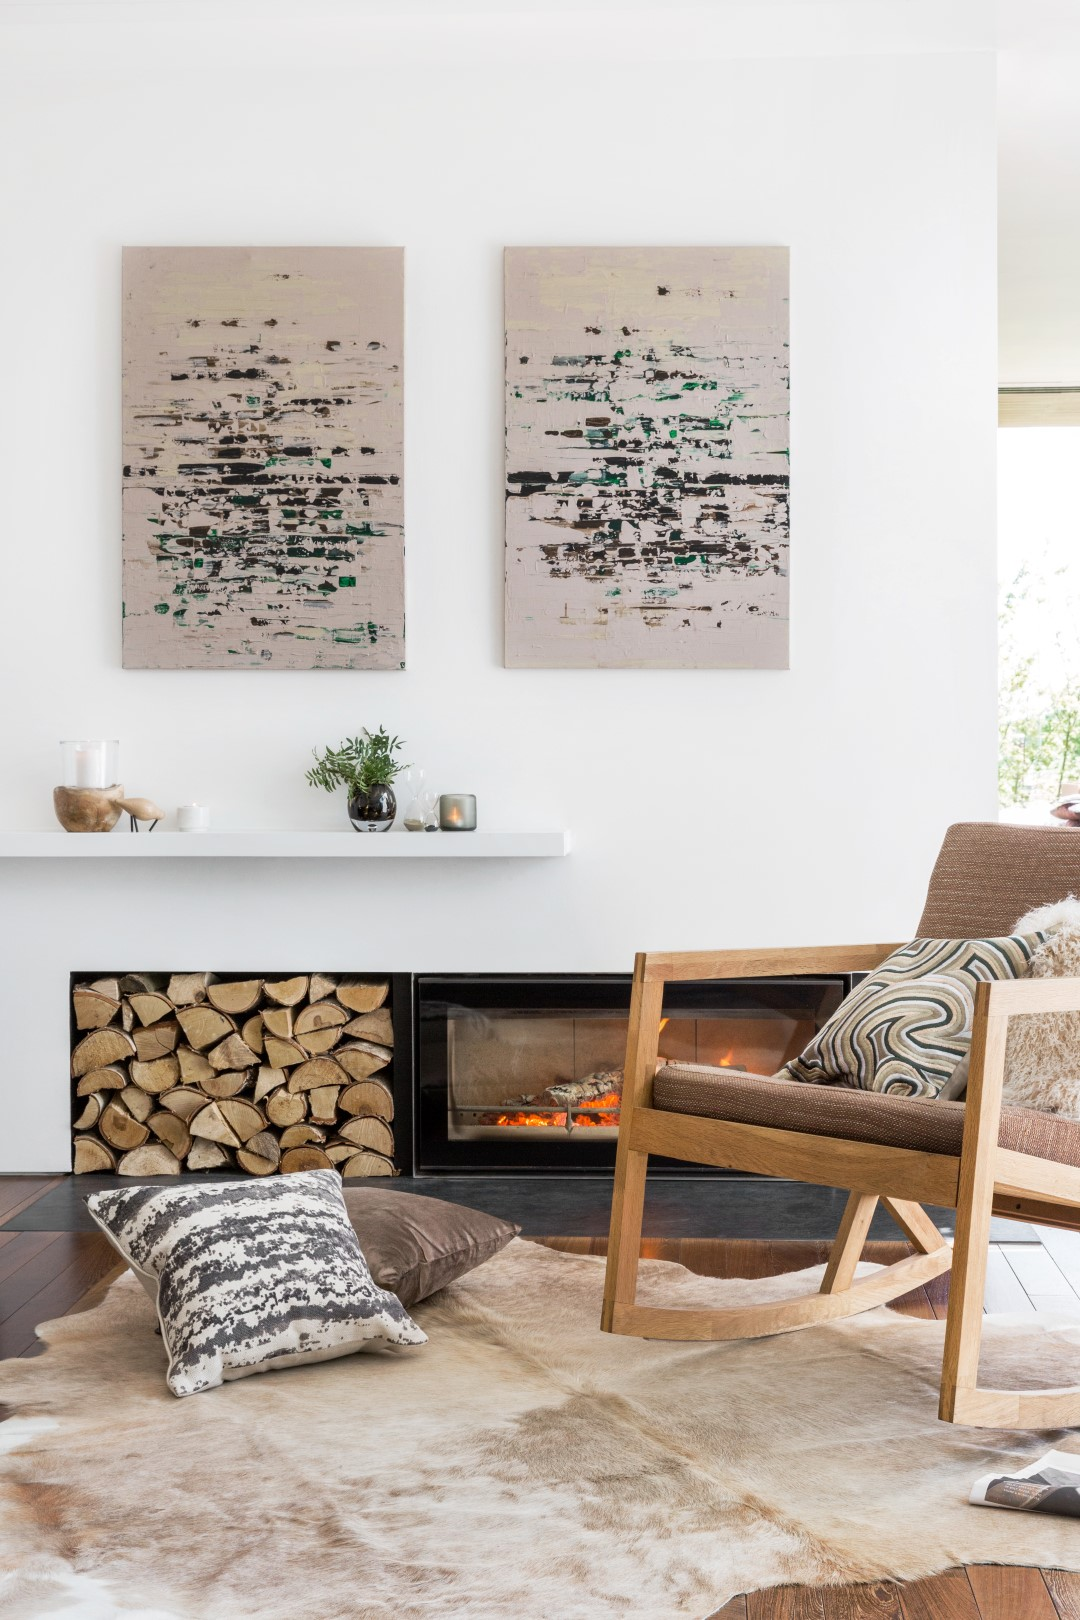 How to Incorporate Contemporary Design into the Home